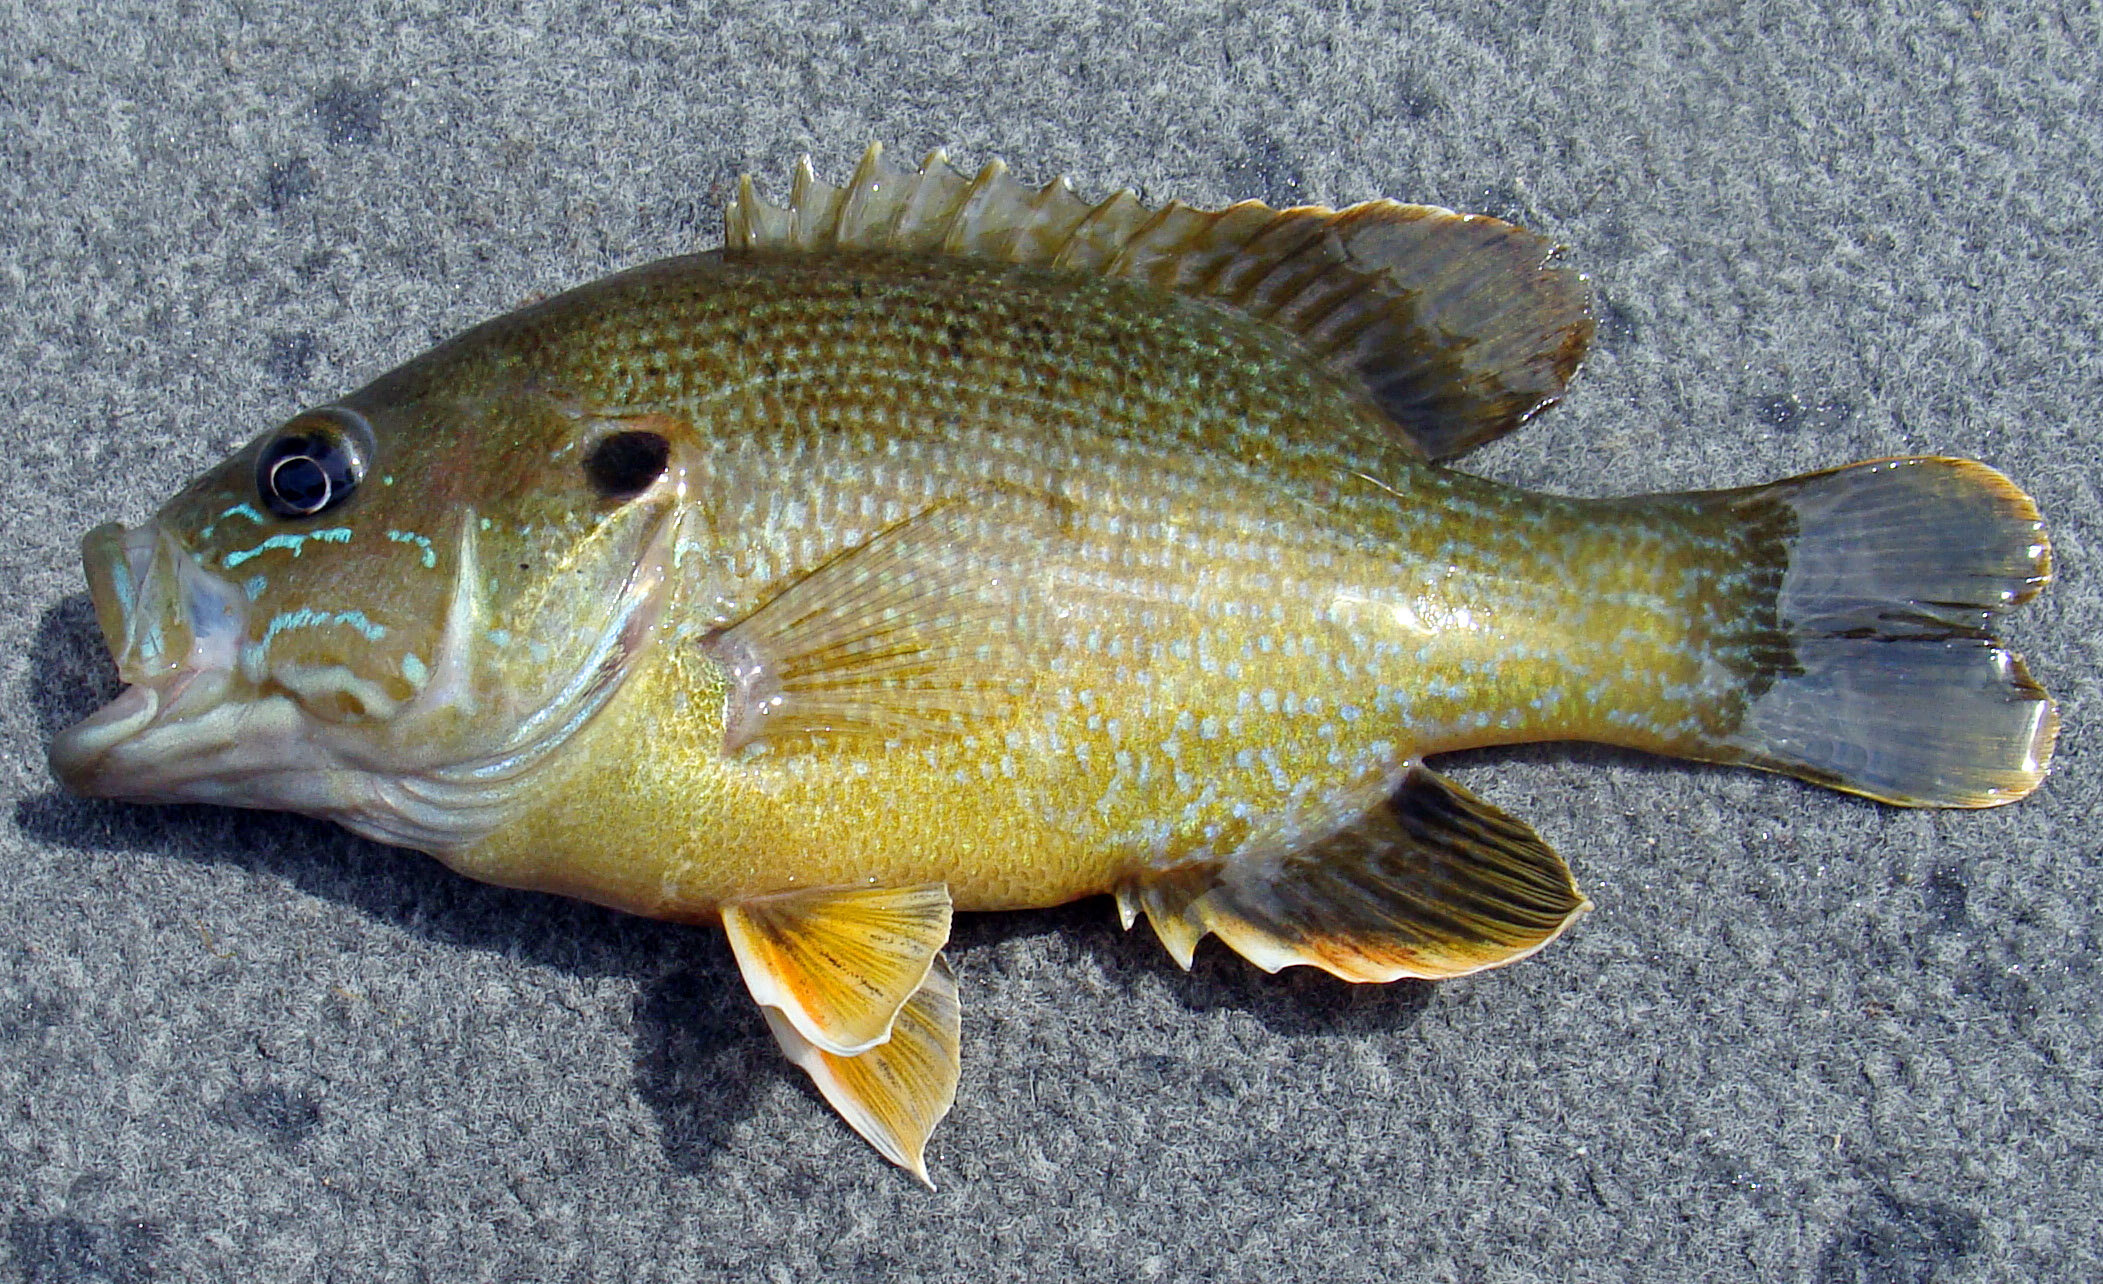 Wildlife Watching Wednesday: The Colorful Green Sunfish